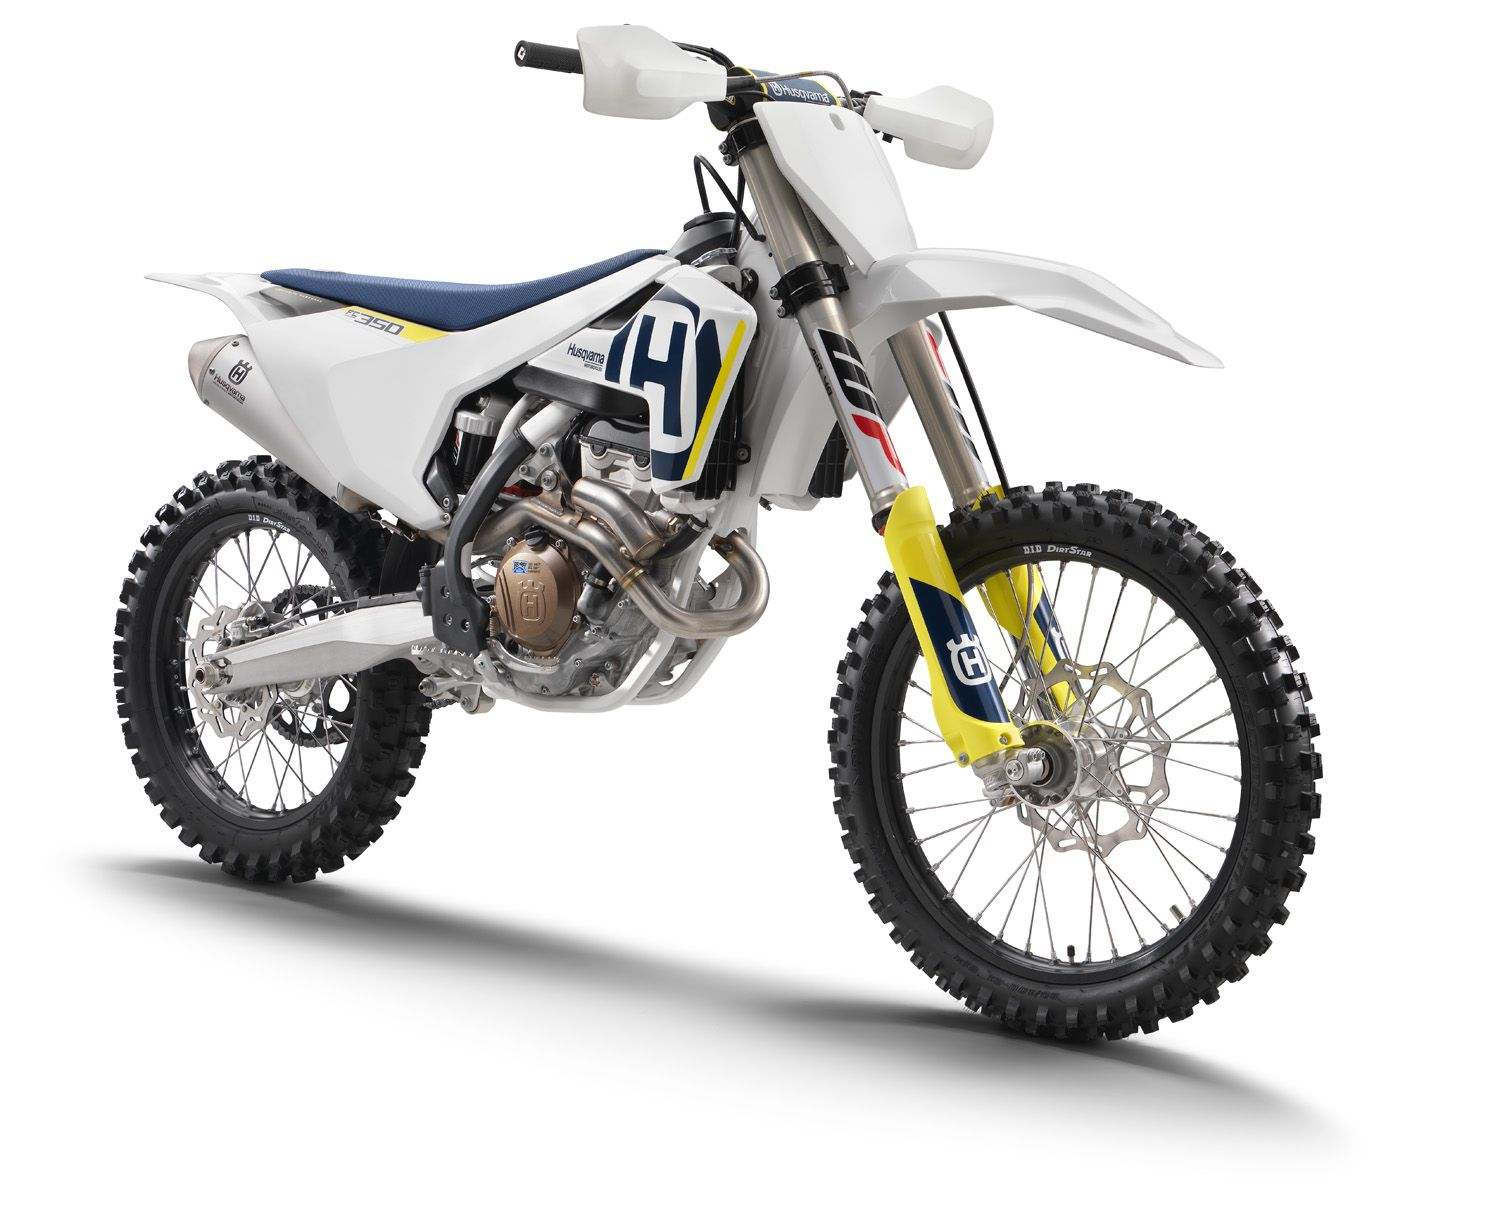 2018 Husqvarna FC, TC, FX, and TX Models Announced | Dirt Rider